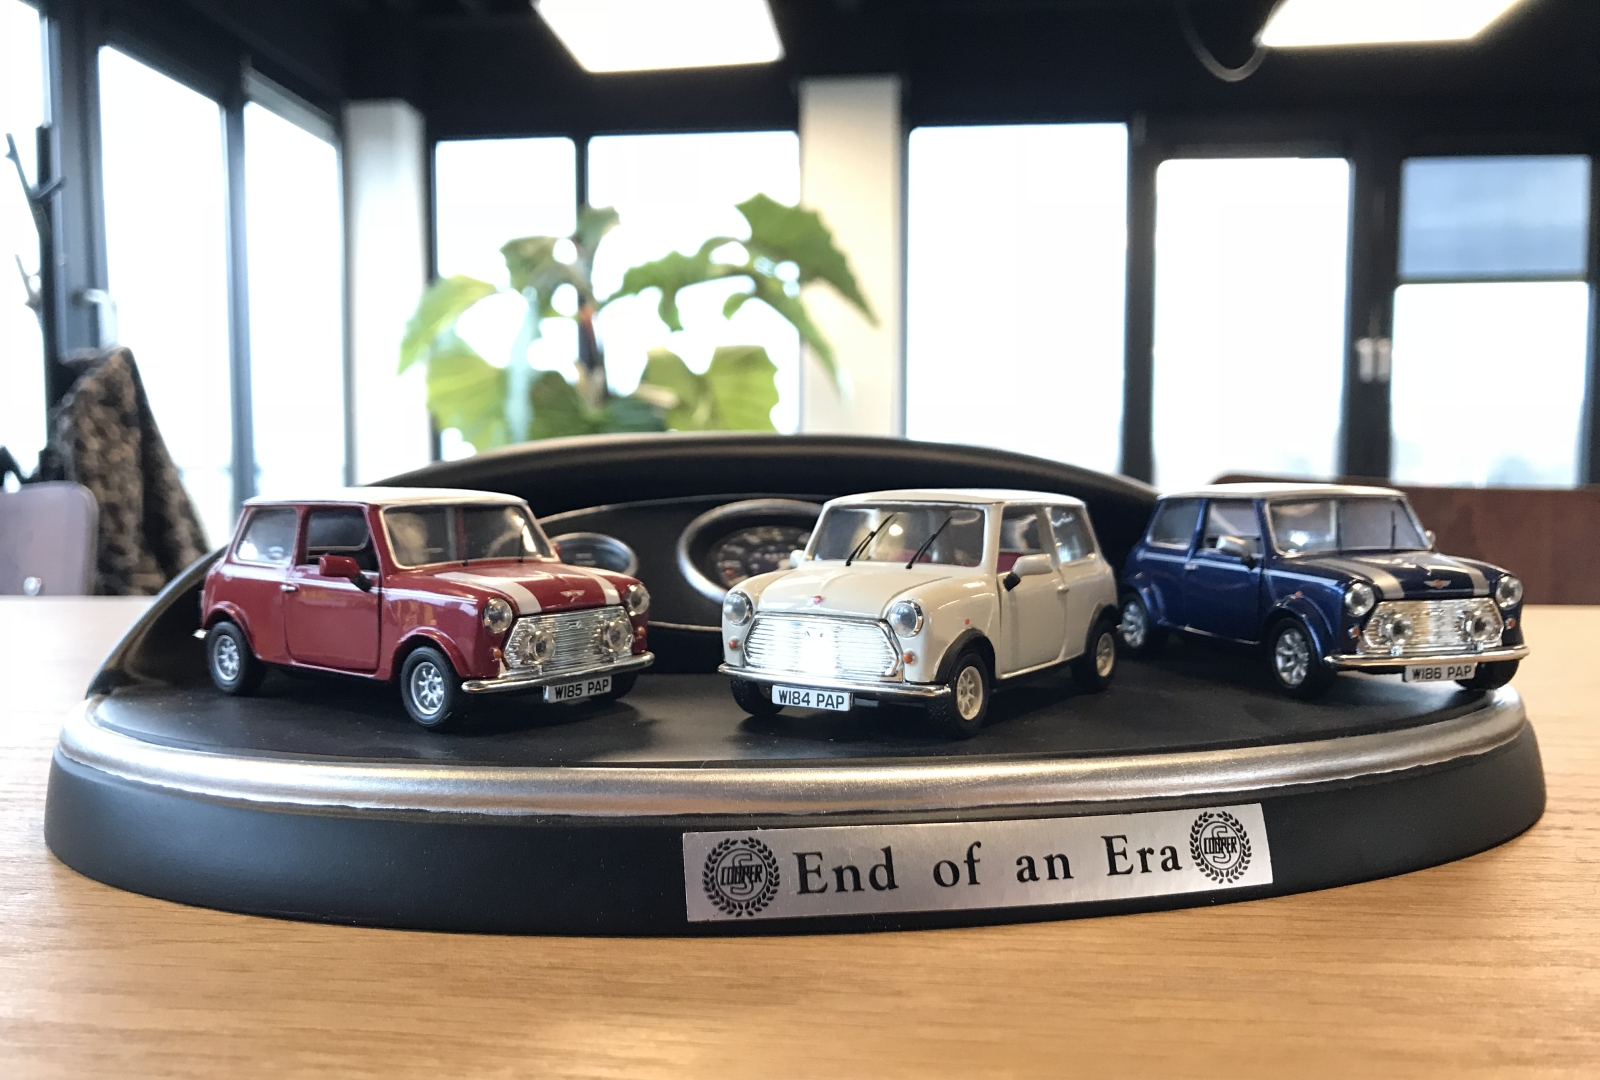 MINI End of an Era AutoRAI in Miniatuur